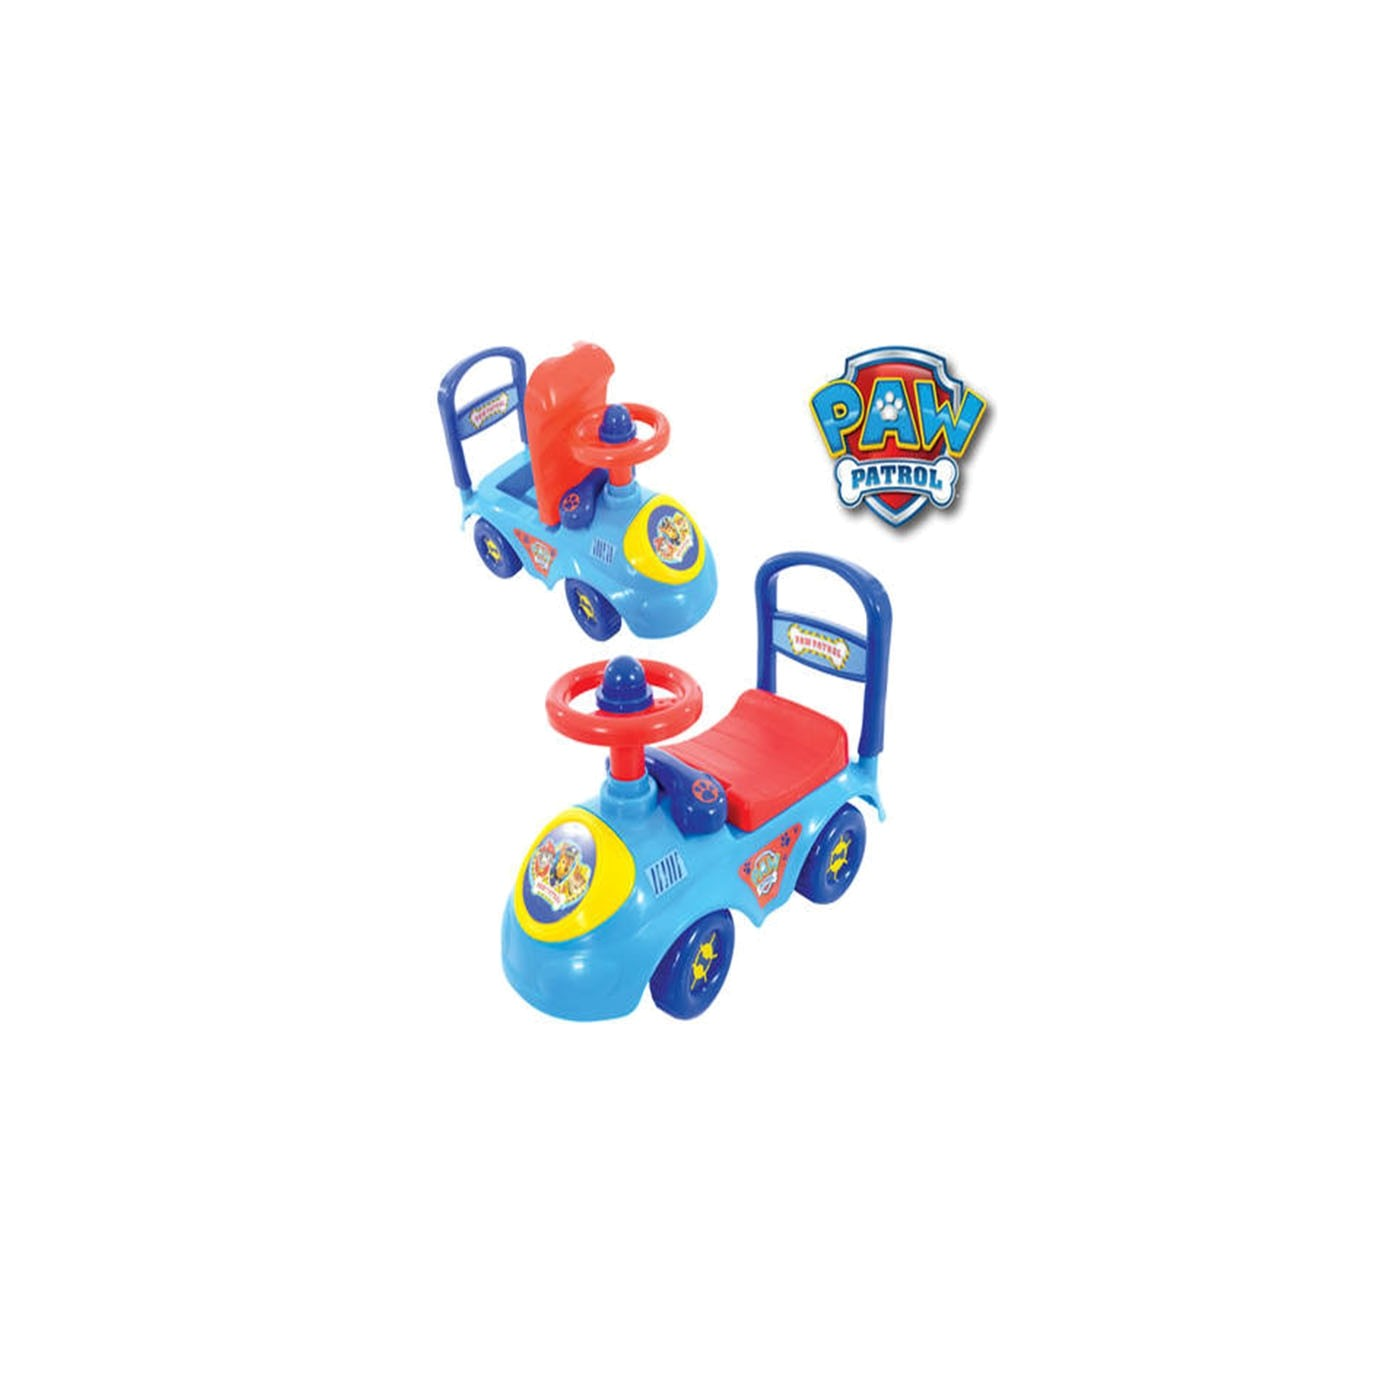 PAW PATROL RIDE-ON